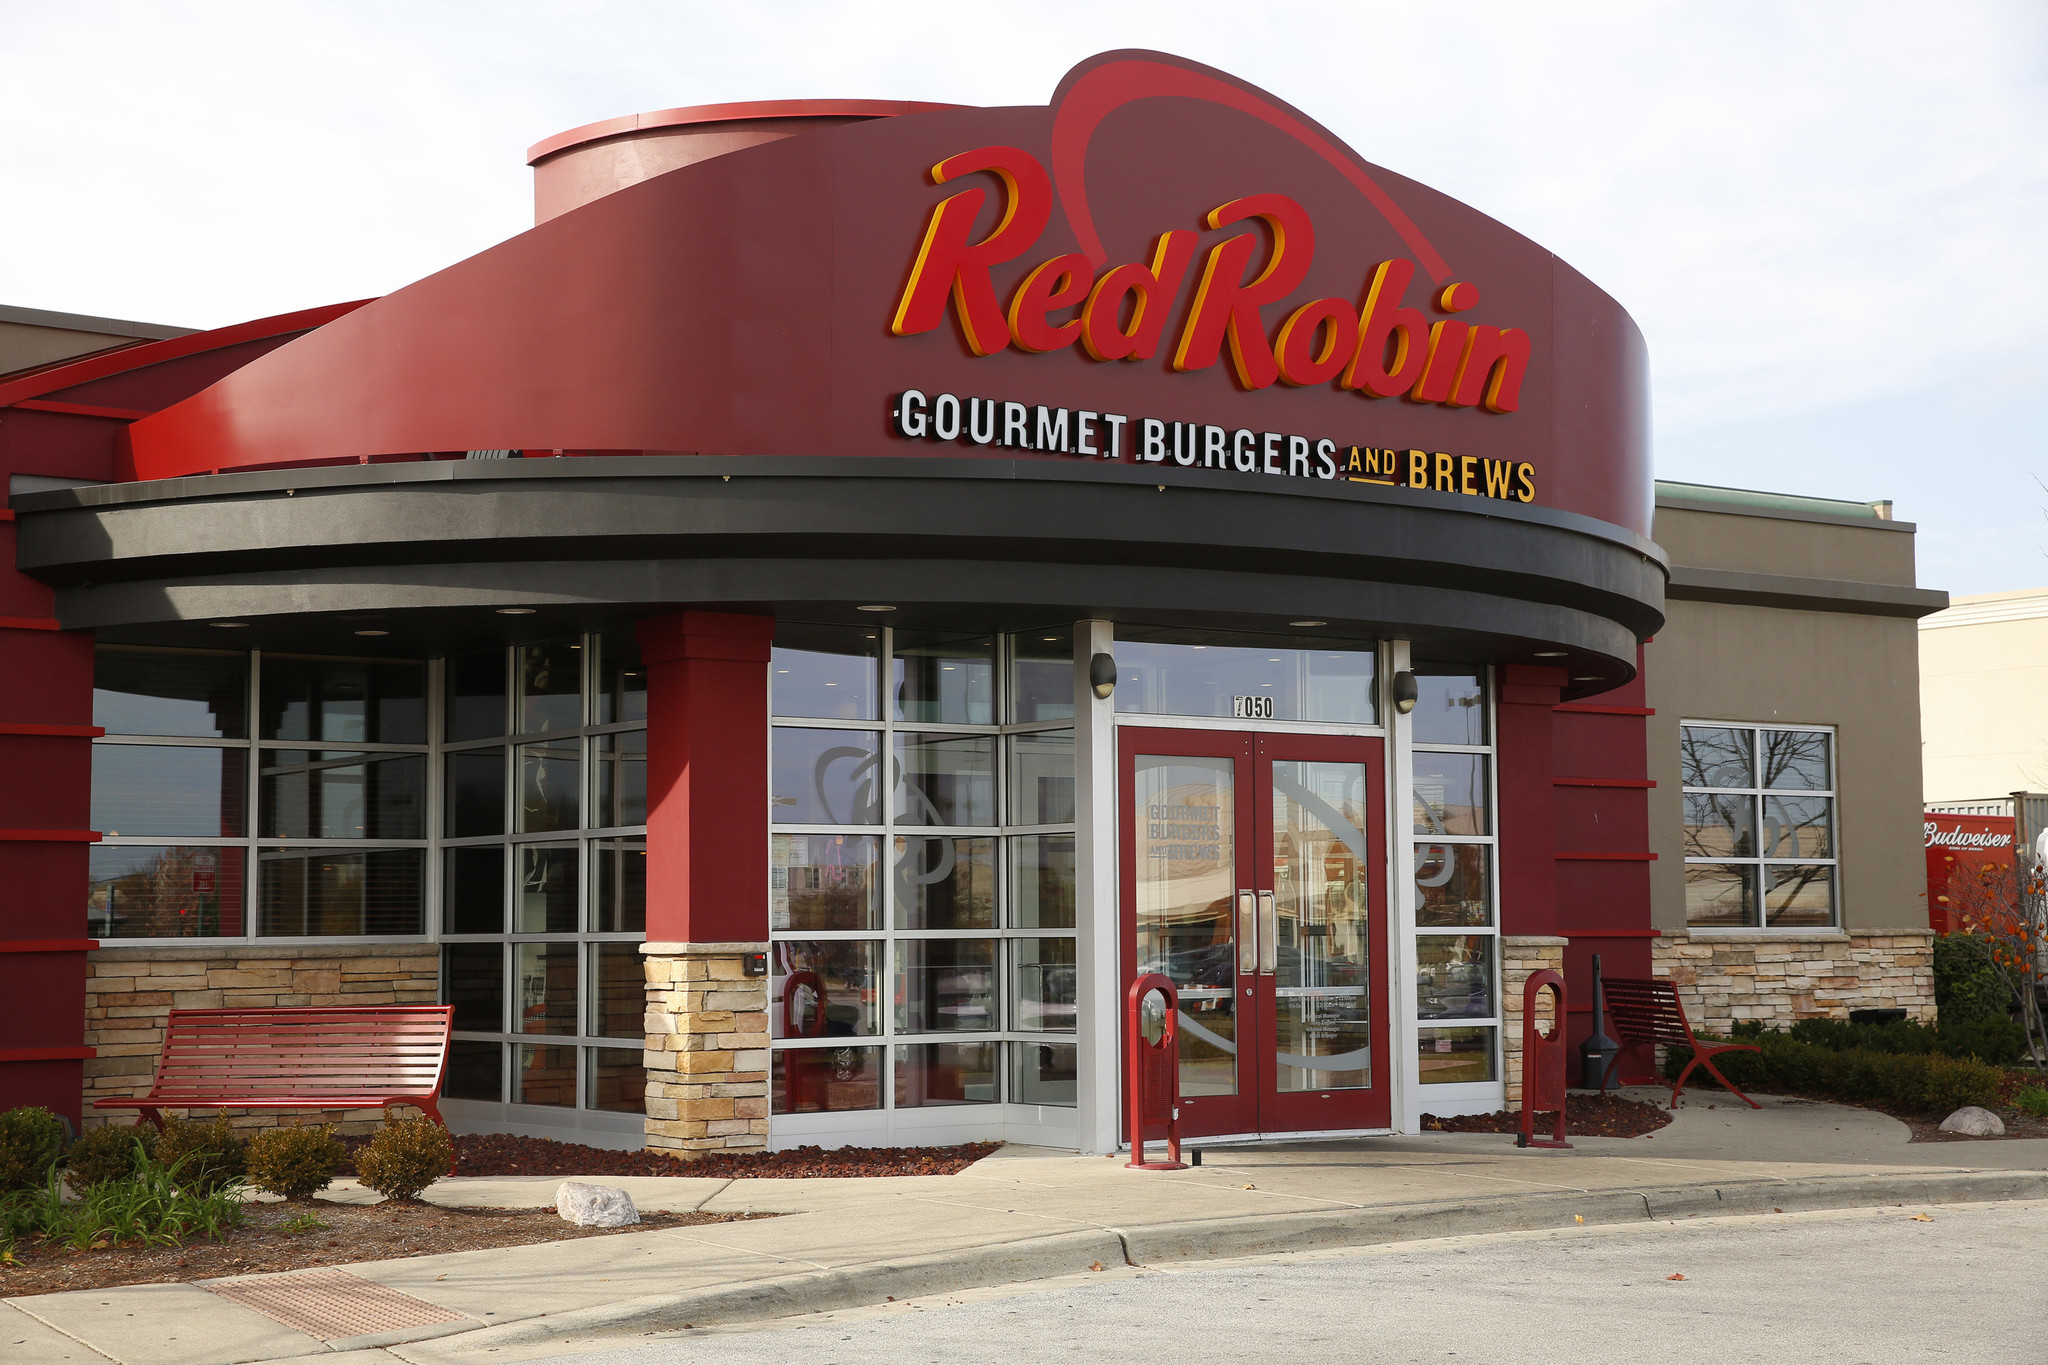 Red robin photo